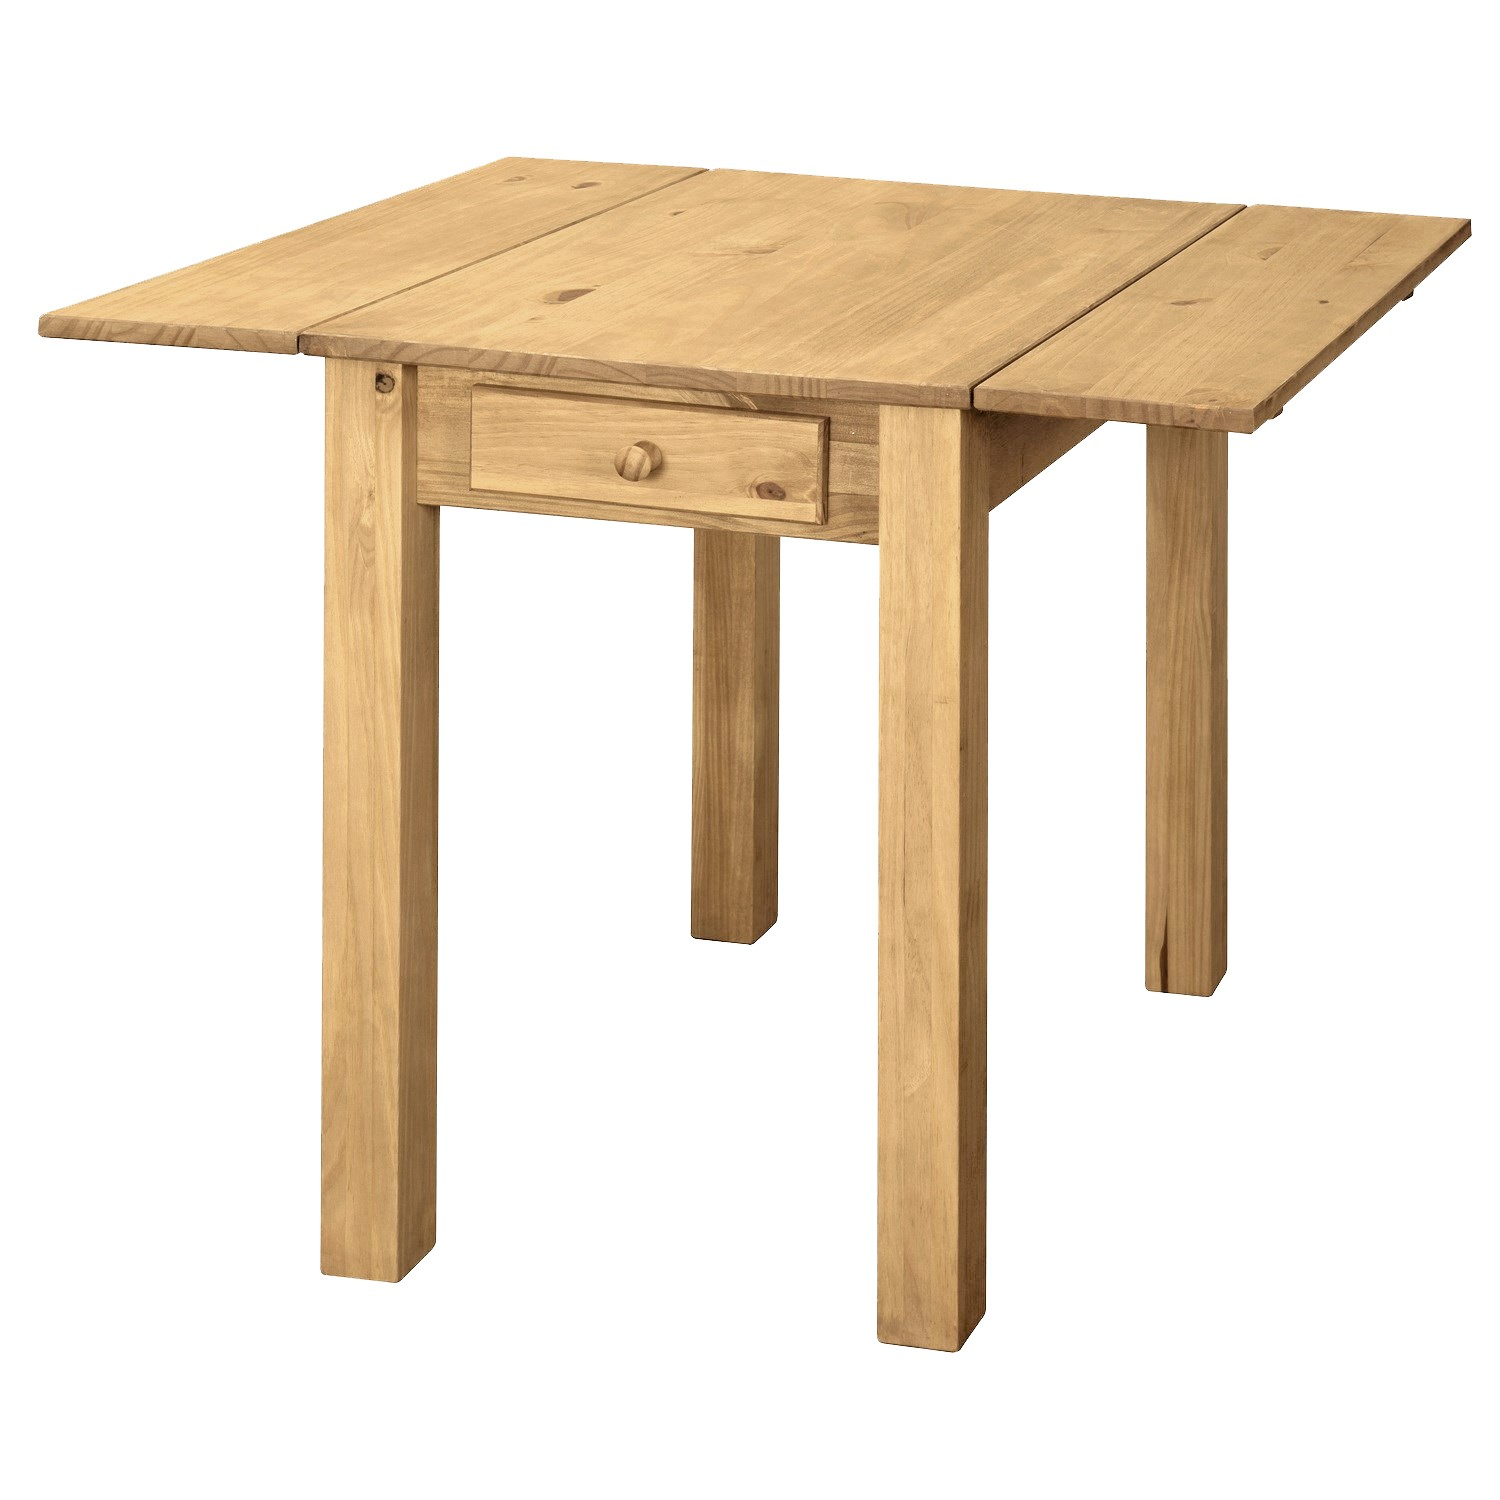 Drop Leaf Pine Dining Table in Solid Pine  Emerson